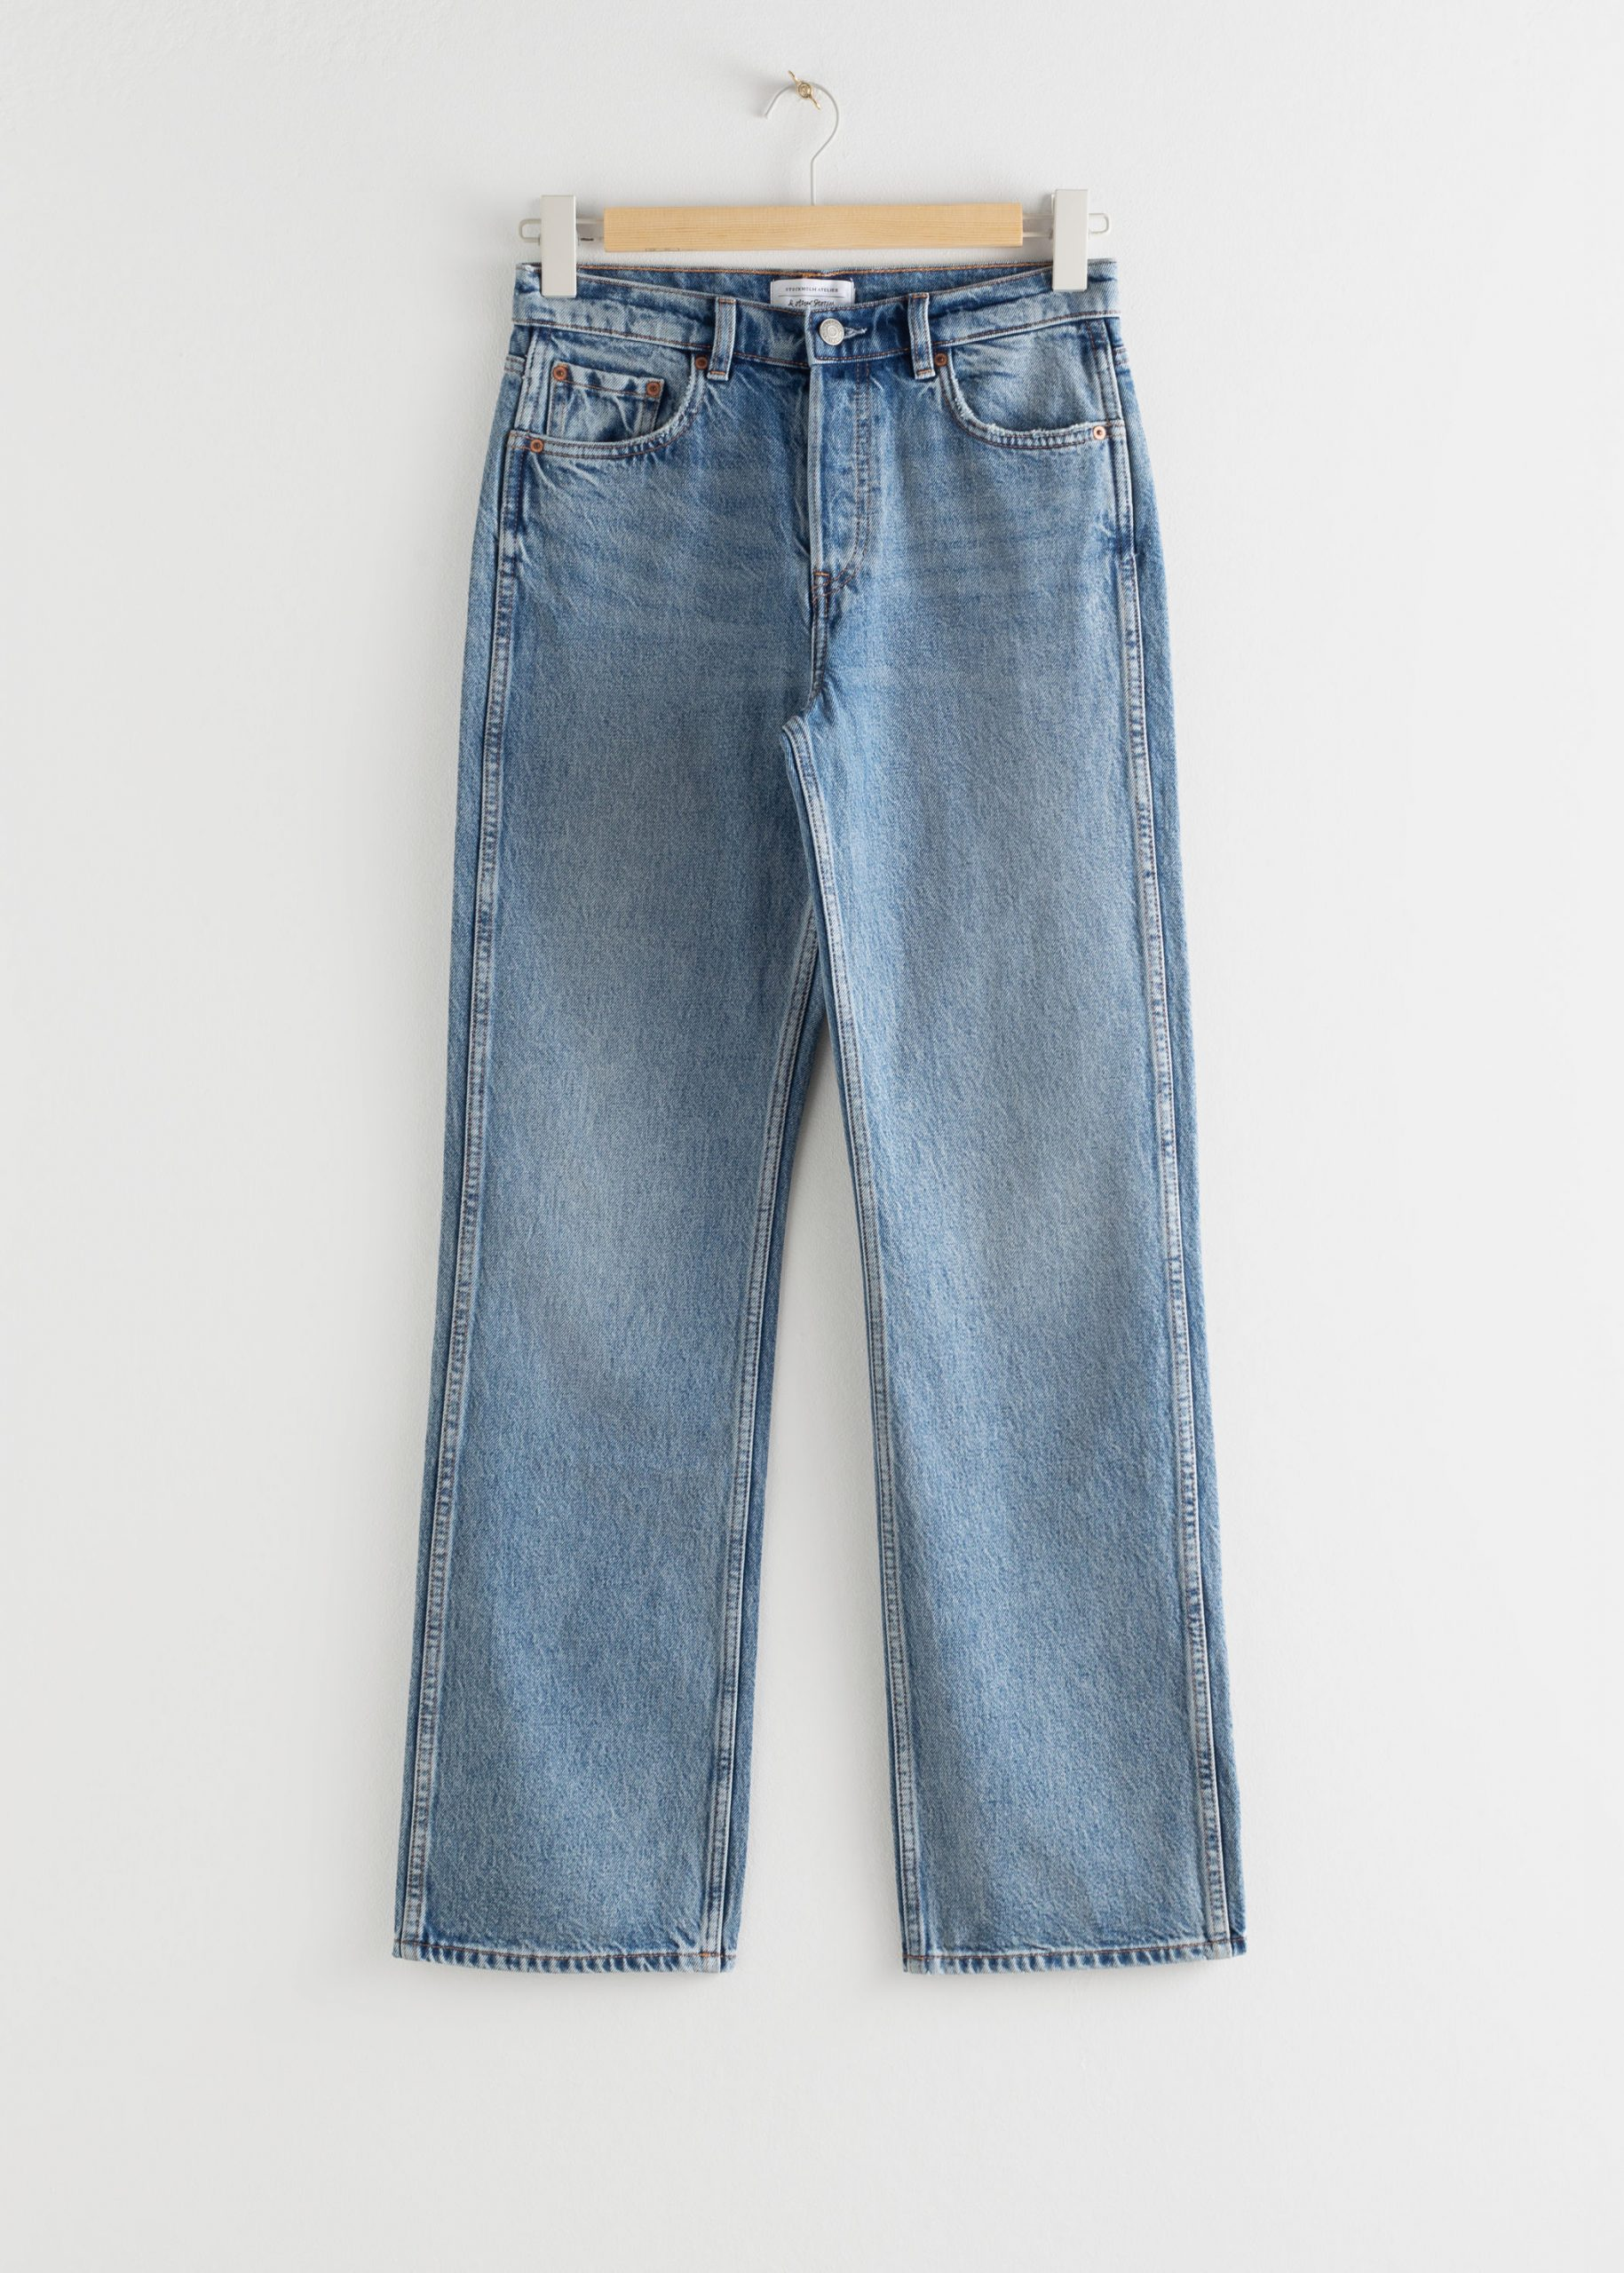 & Other Stories Straight Mid Rise Jeans